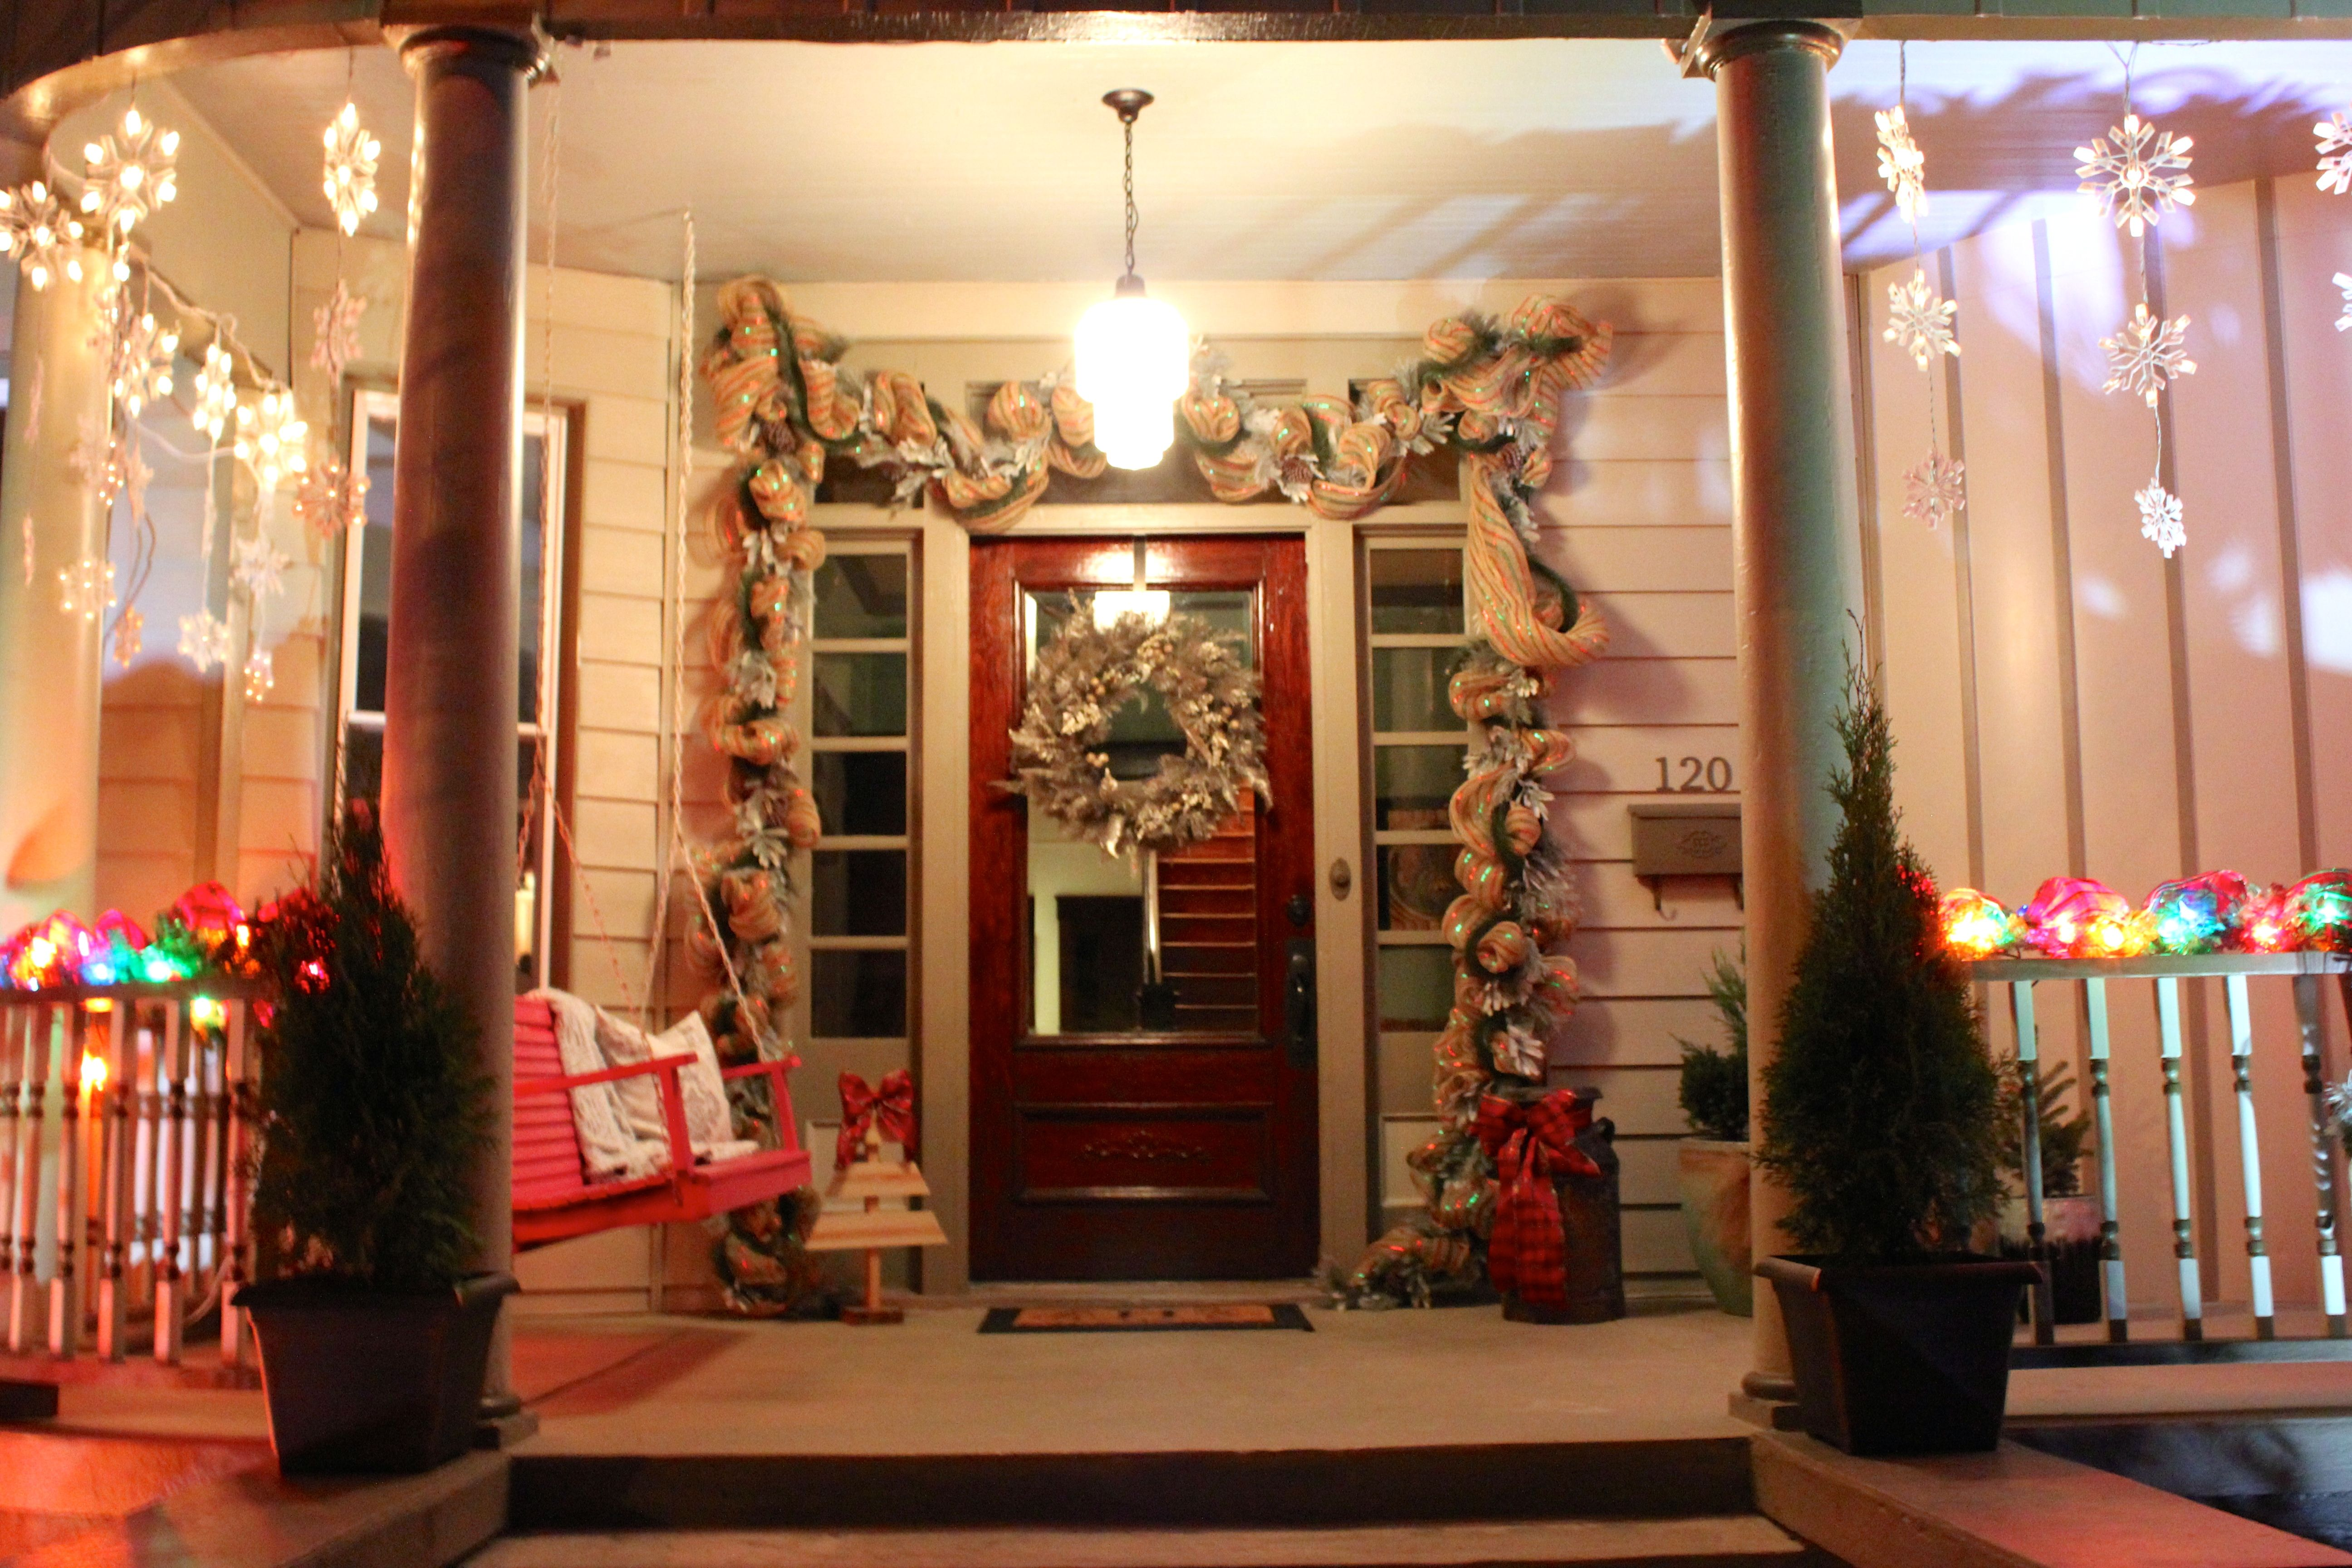 Hathorn Hall Holiday Home Tour Twinkling Lights Twinkle